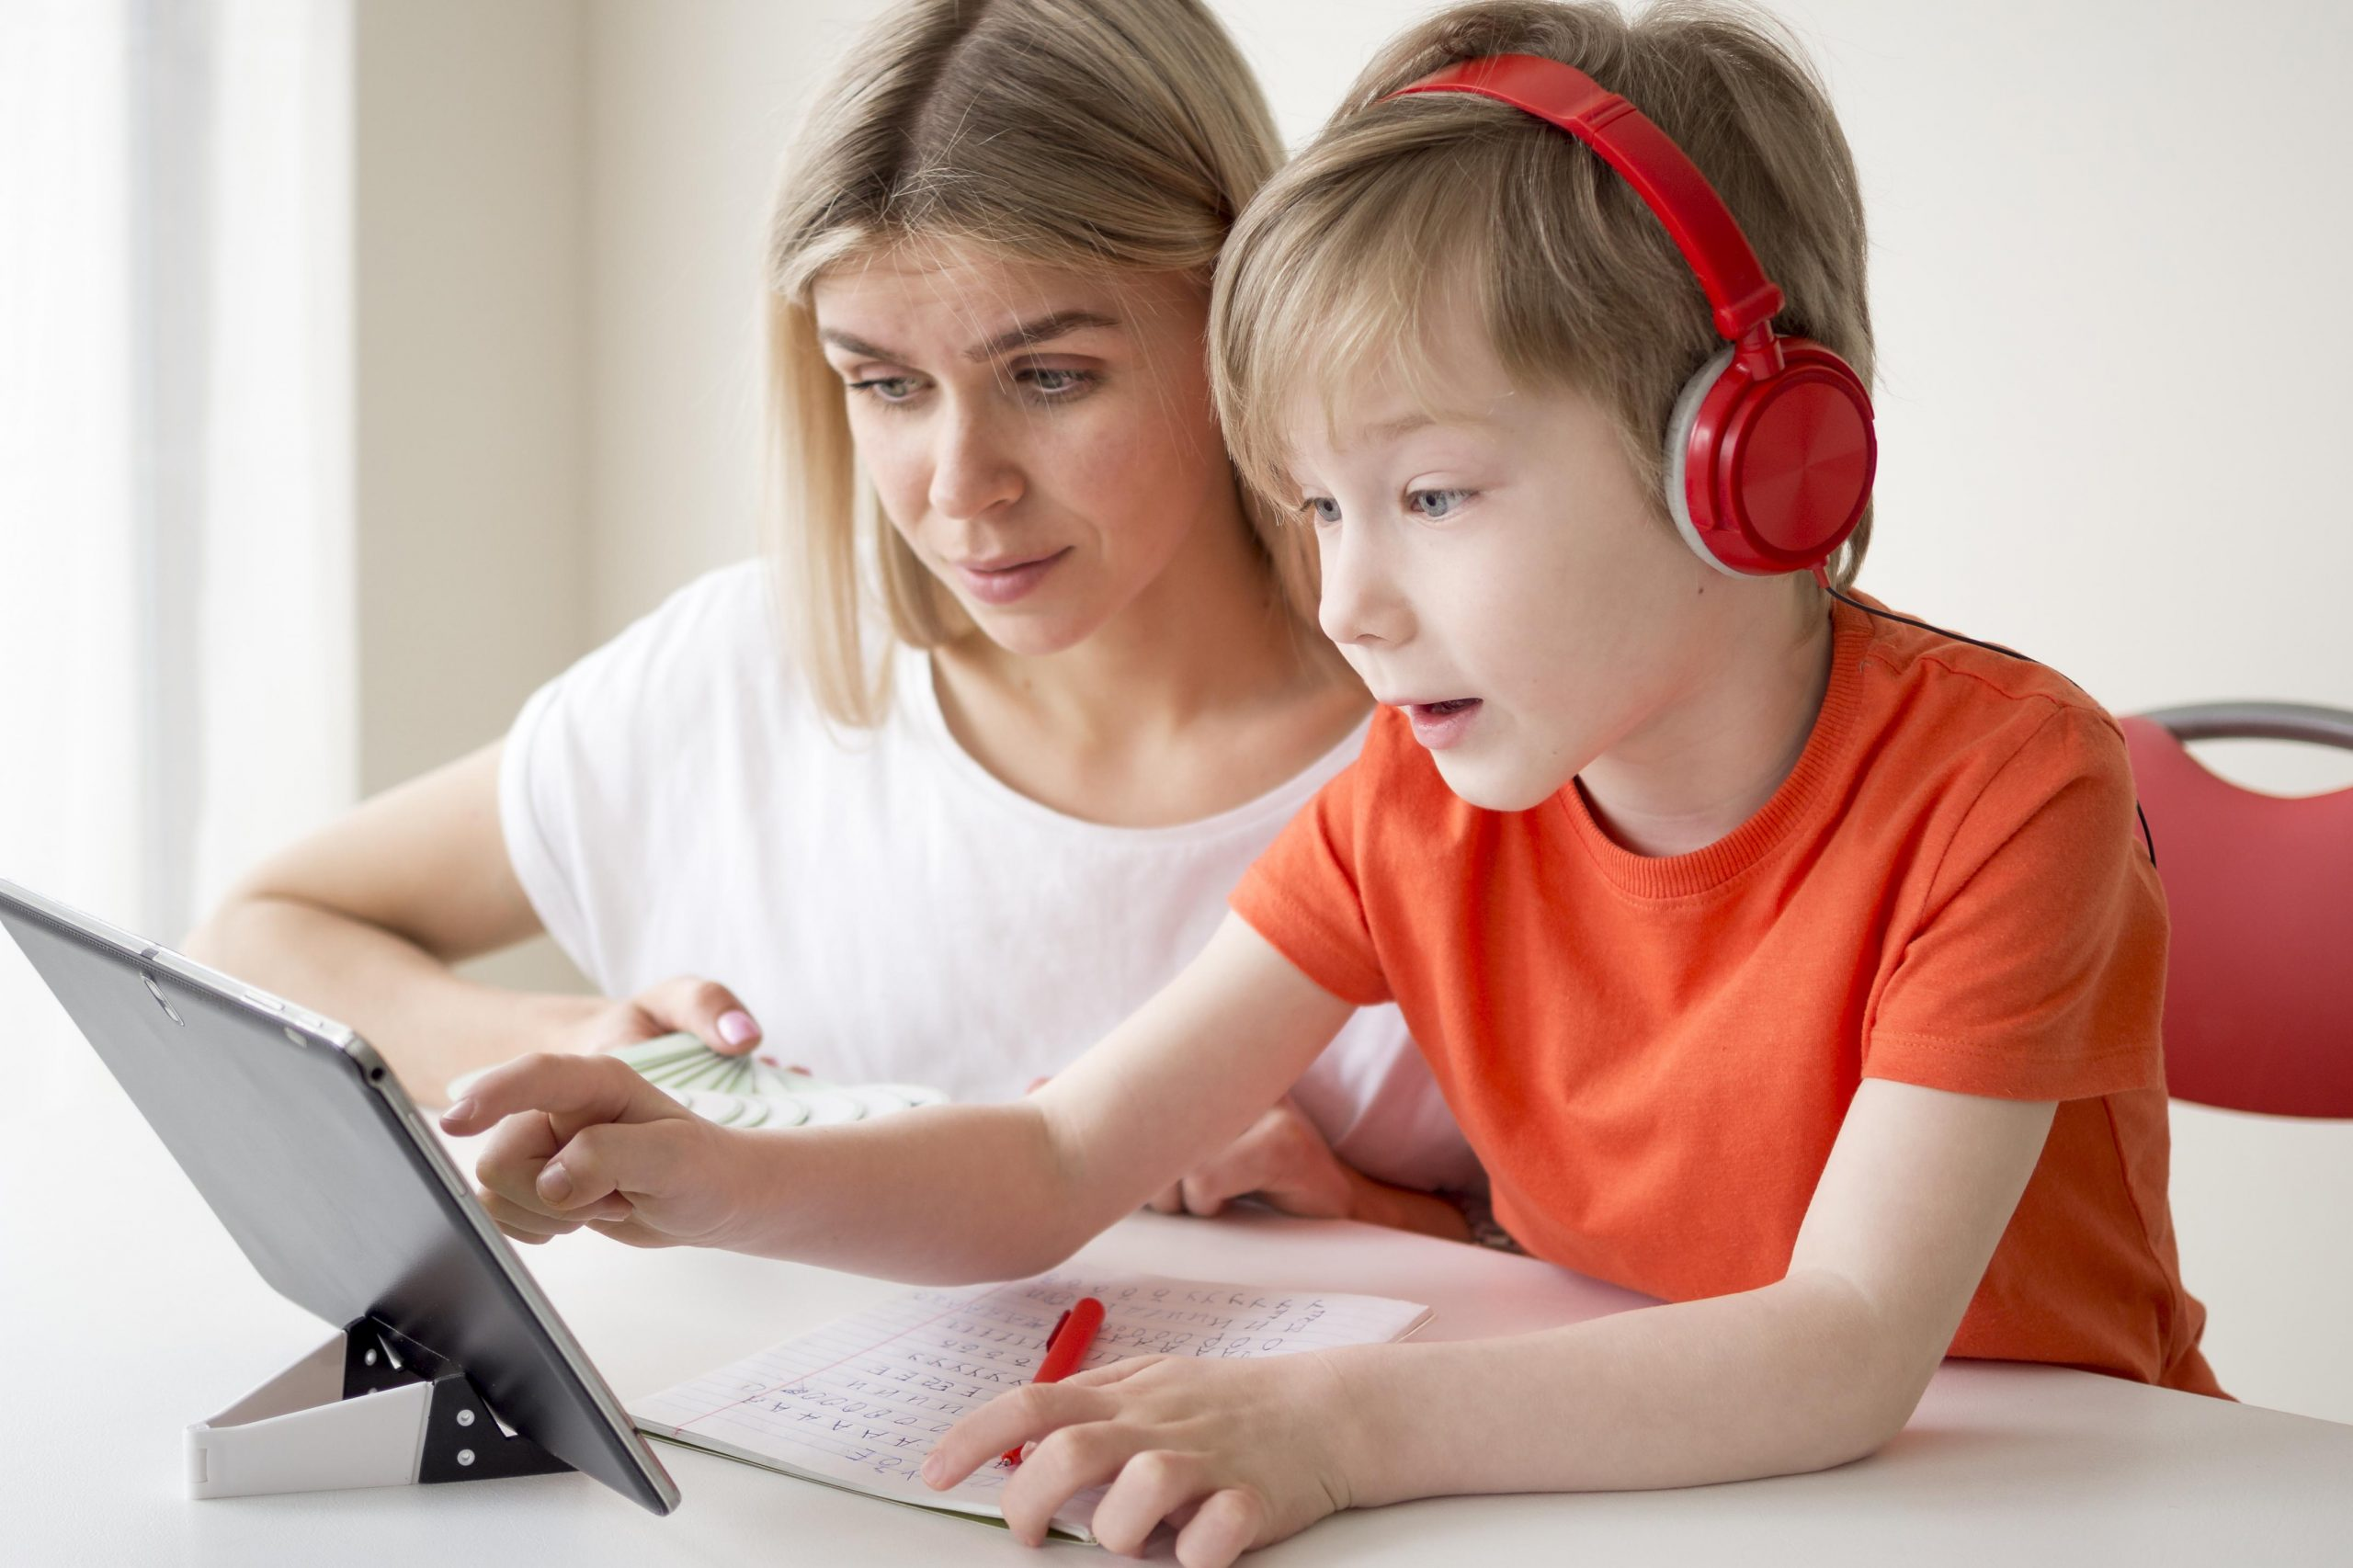 Why Is Coding Important For Kids To Learn?